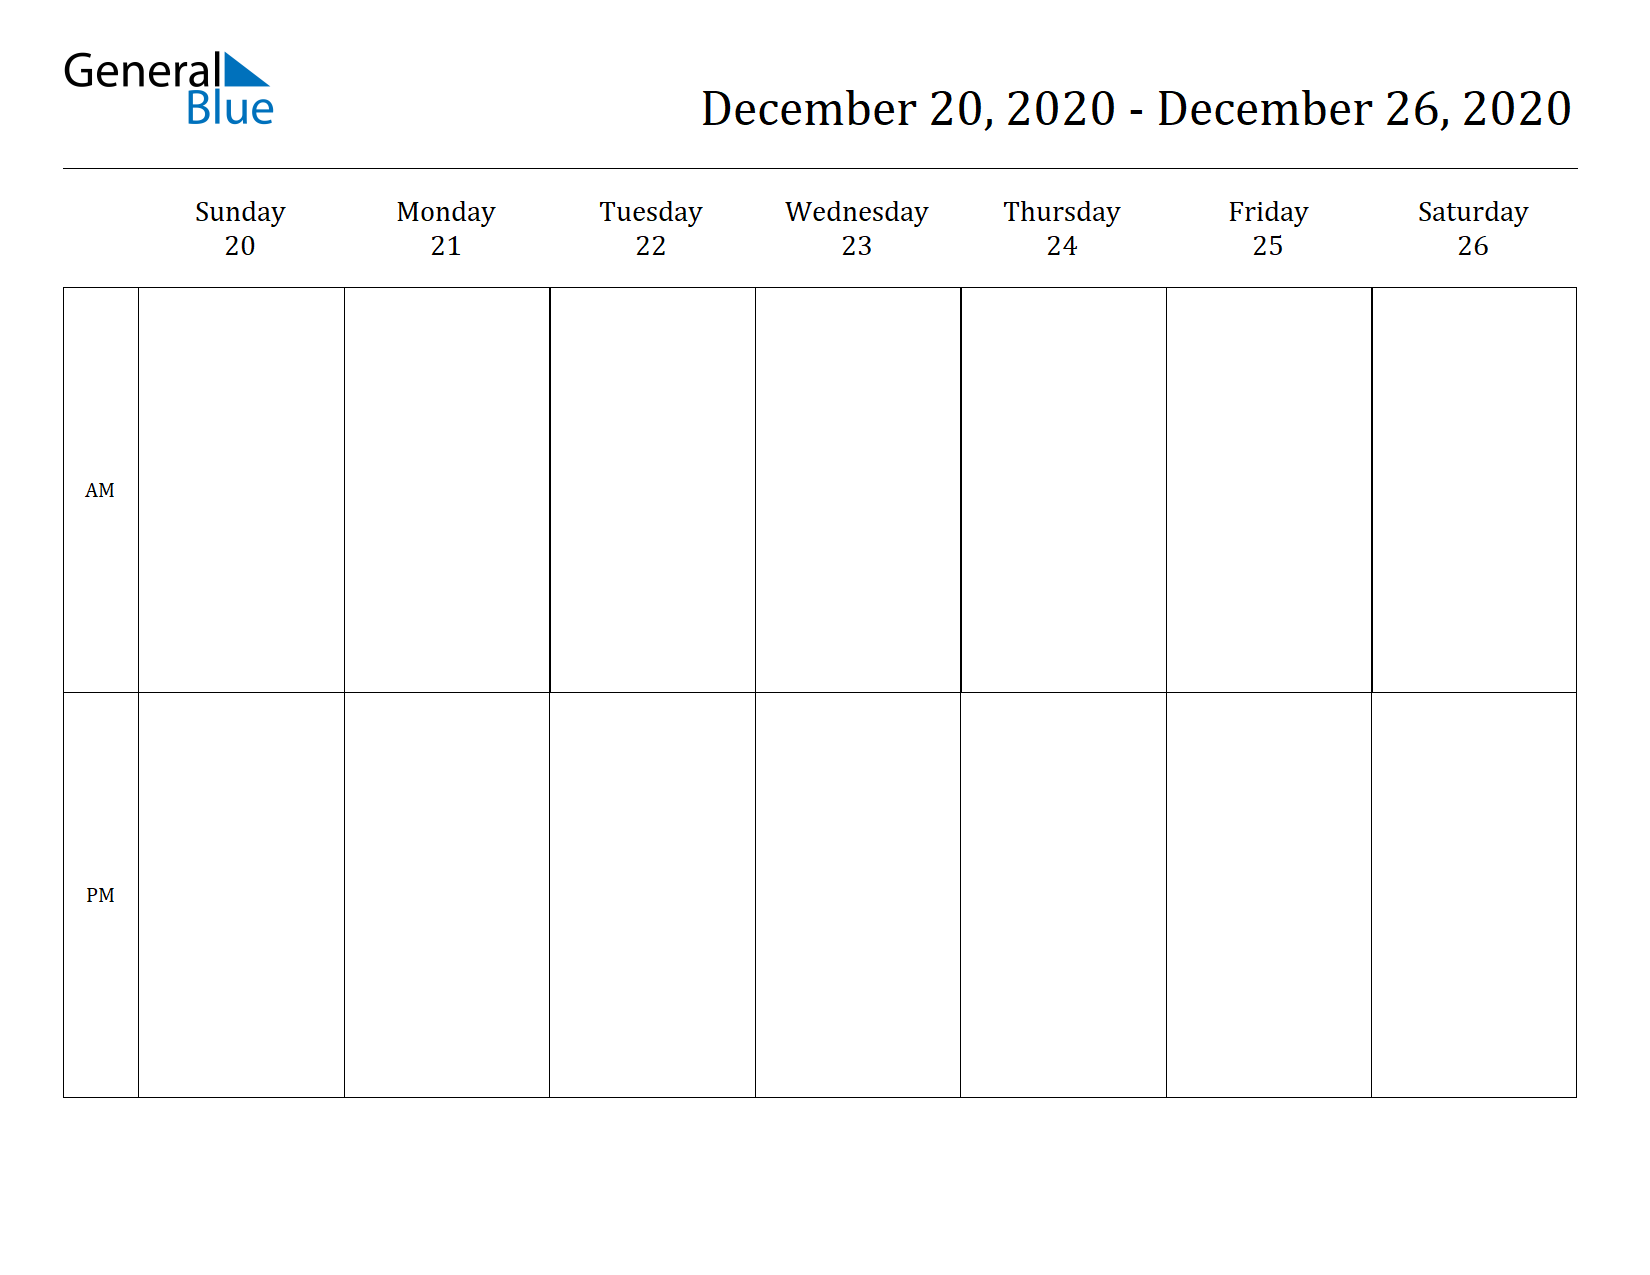 Weekly Calendar for Dec 20, 2020 to Dec 26, 2020